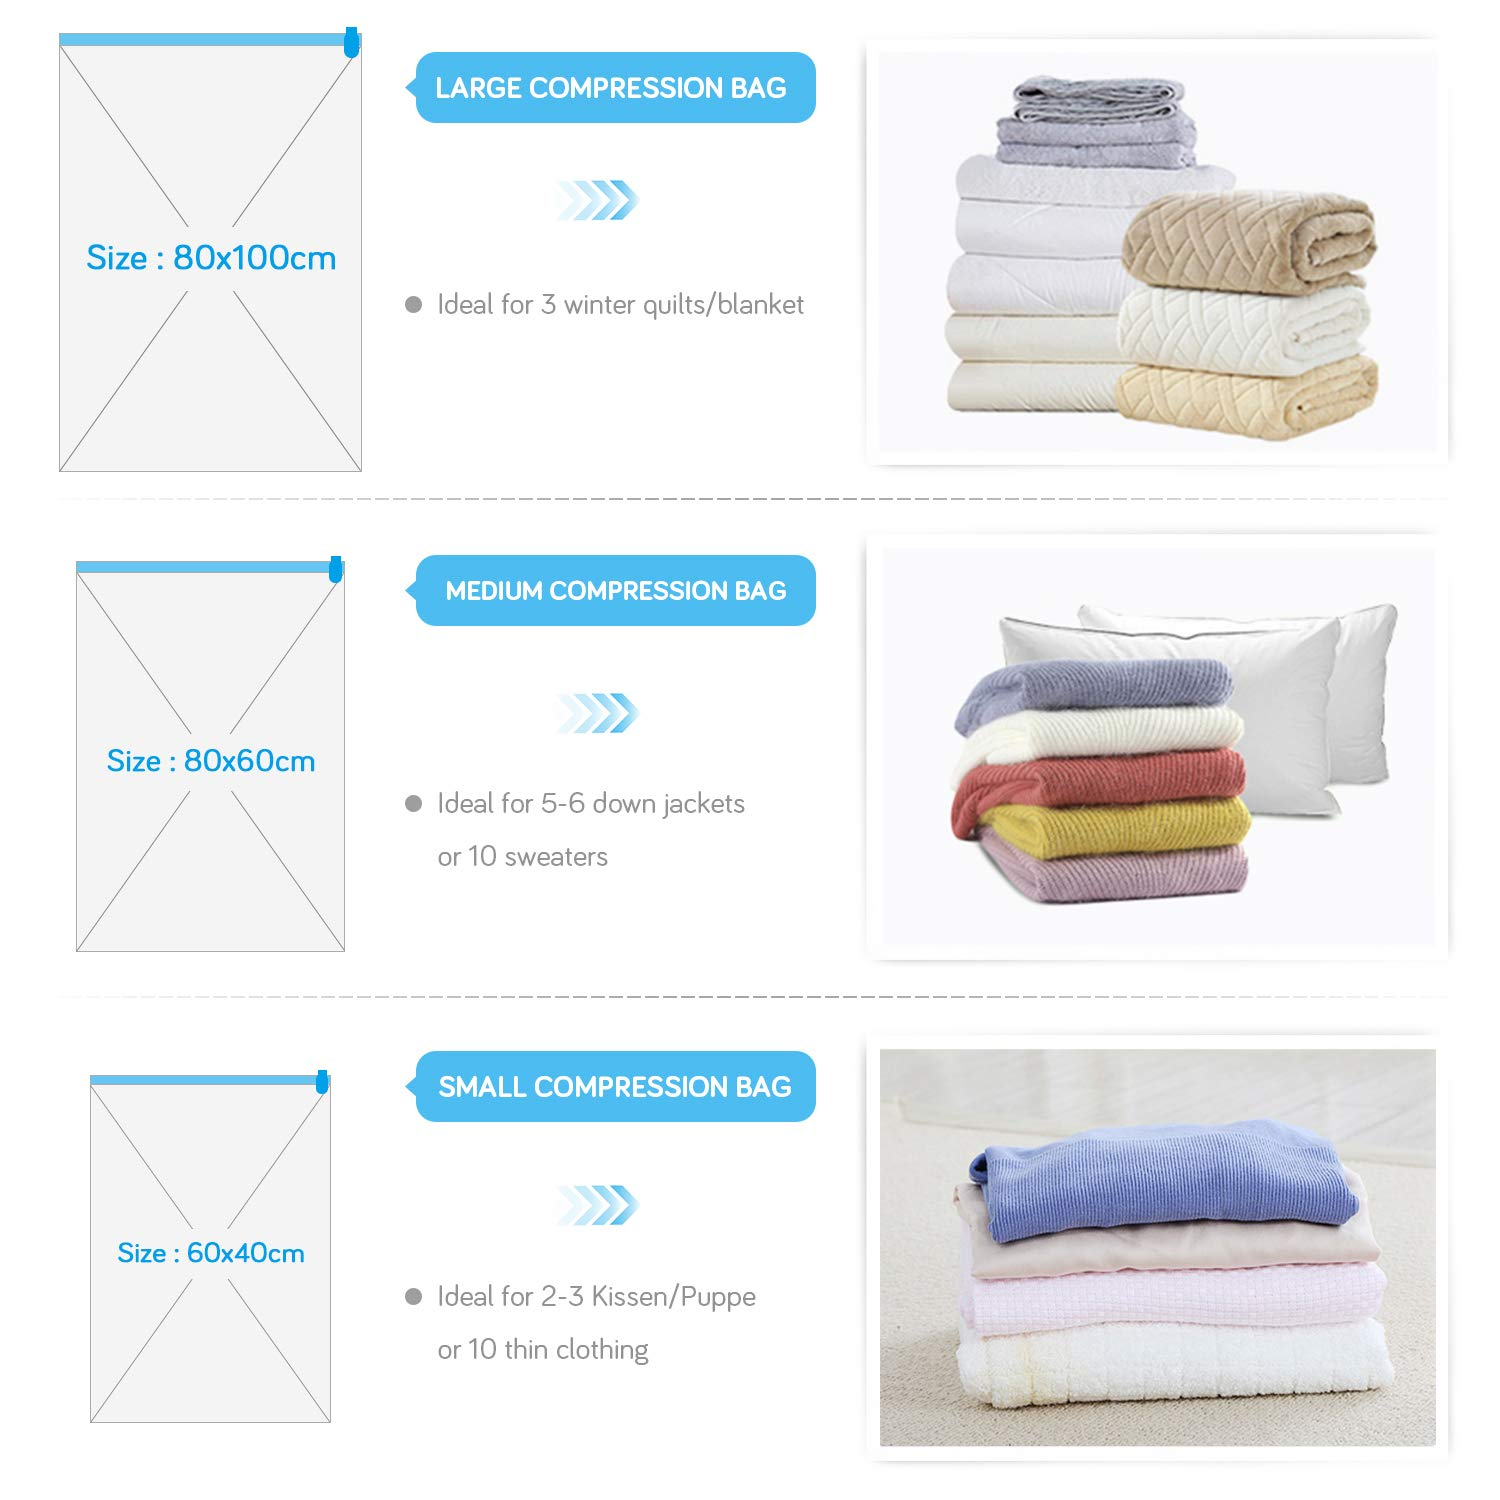 Fansteck Vacuum Storage Bags 15 Packs Save Up 80/% Space for Clothes Duvets Pillows Blankets and Travel Double Zip with Jumbo Large Medium Sizes